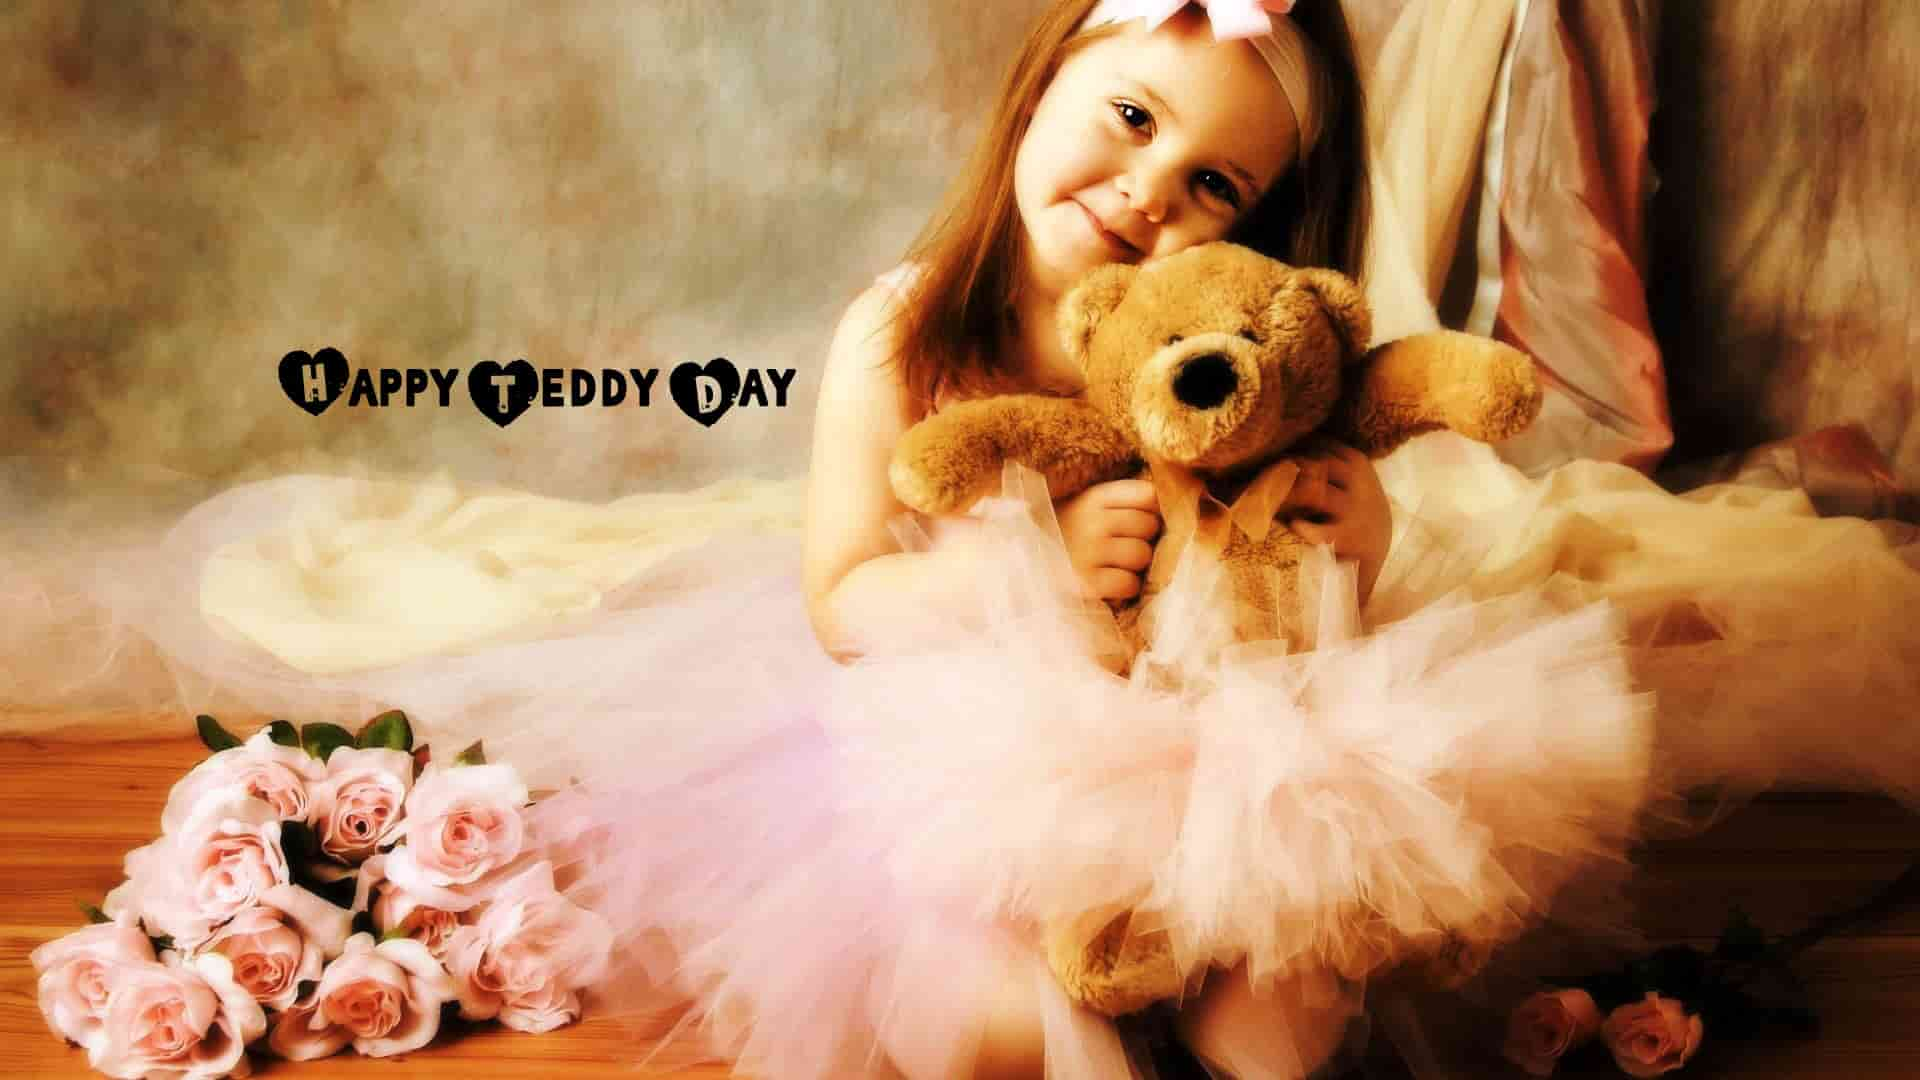 Teddy Day Quotes for Girlfriend